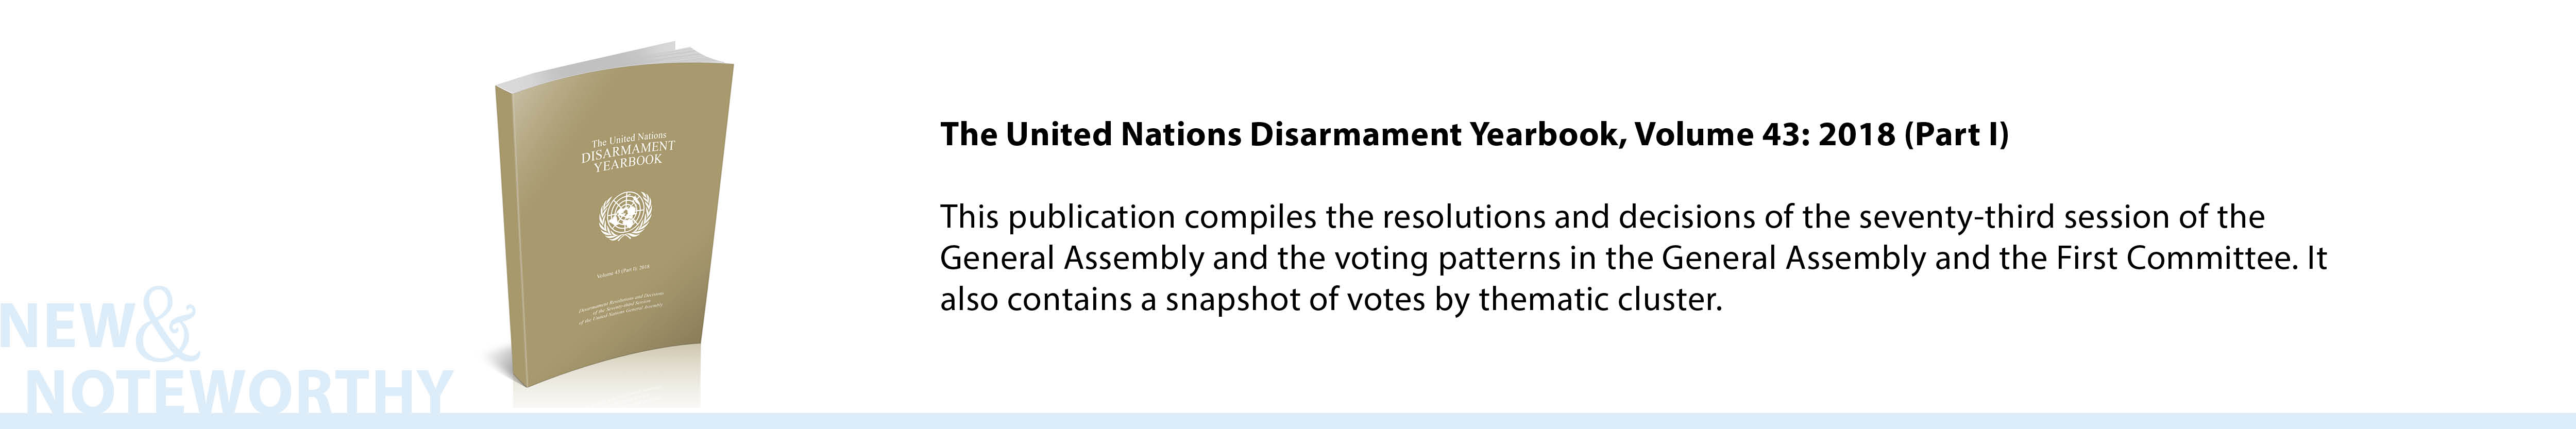 The United Nations Disarmament Yearbook, Volume 43: 2018 (Part I) - This publication compiles the resolutions and decisions of the seventy-third session of the General Assembly and the voting patterns in the General Assembly and the First Committee. It also contains a snapshot of votes by thematic cluster.